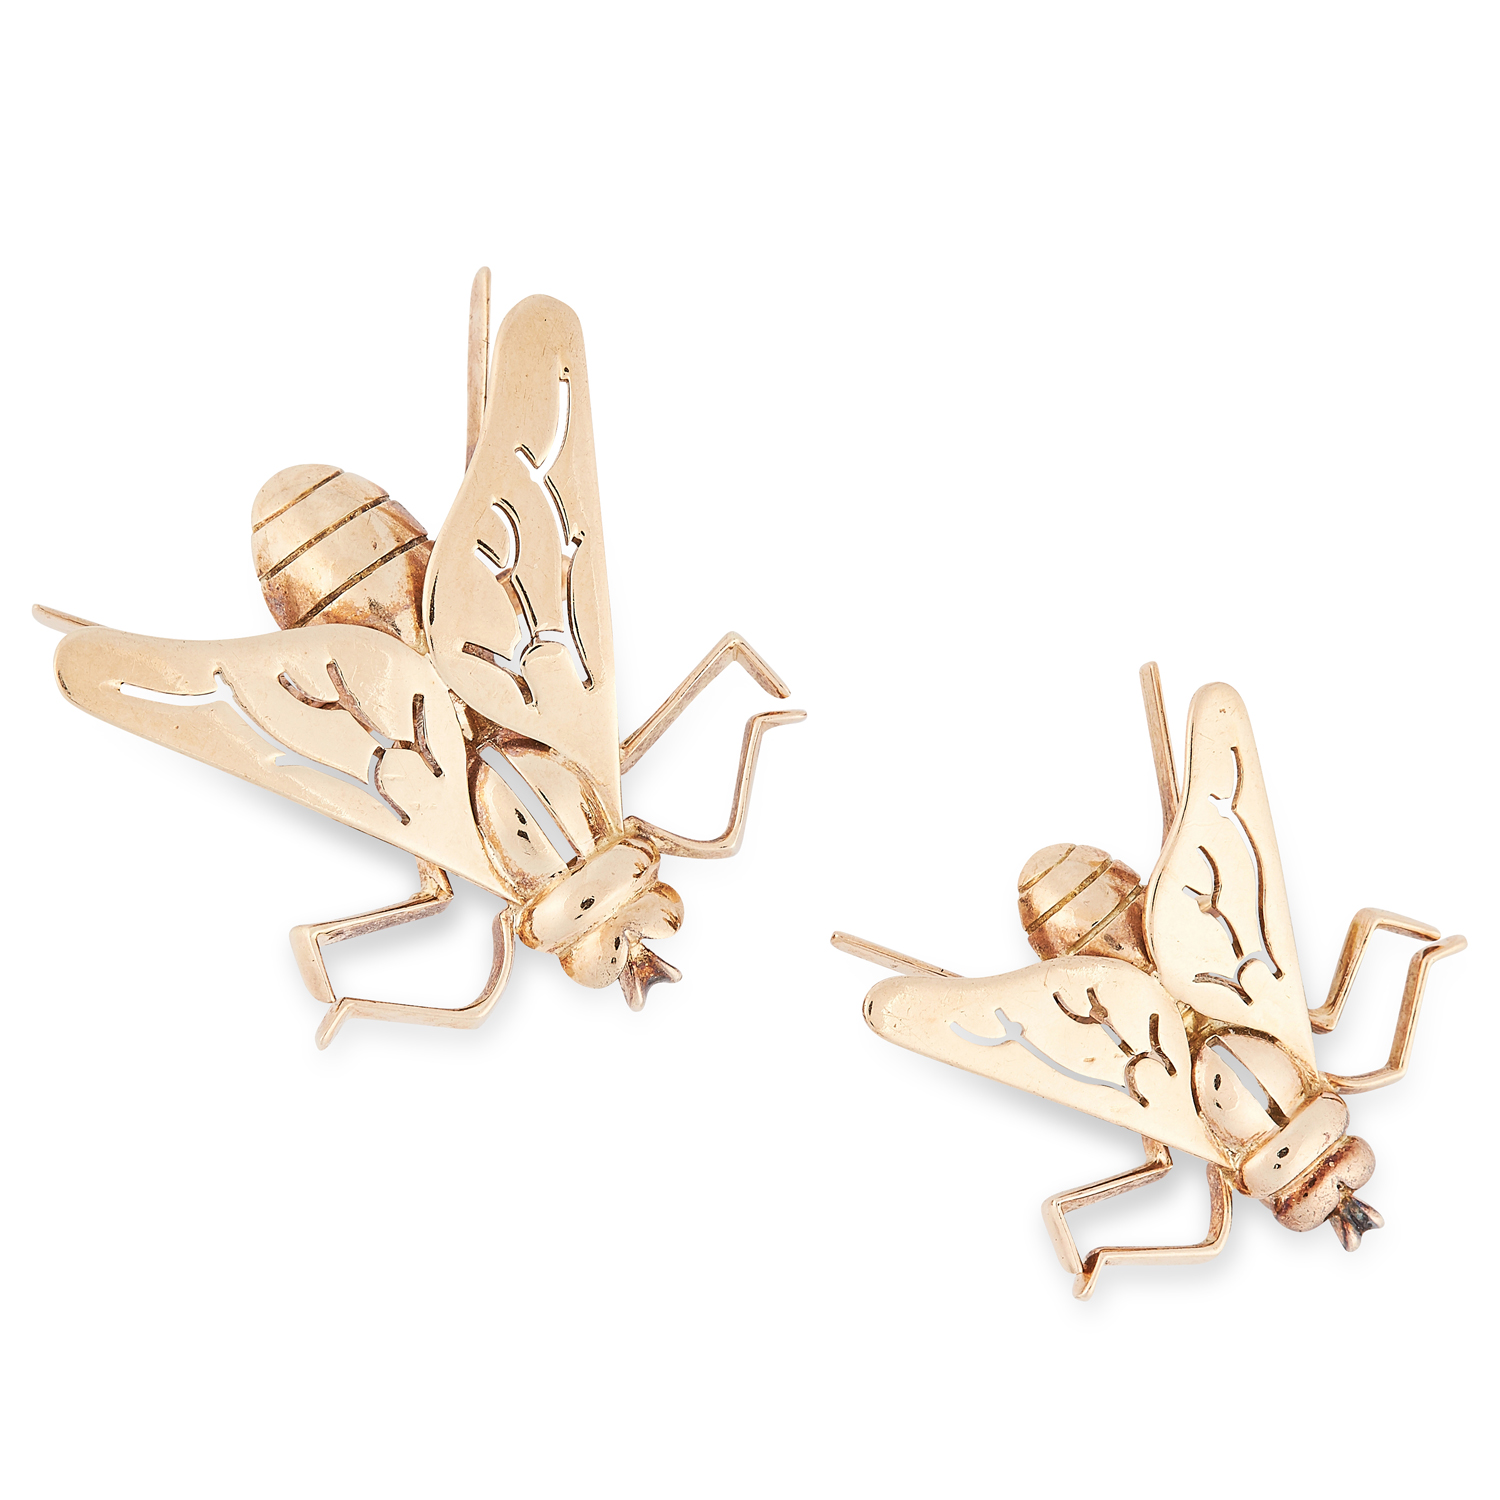 A PAIR OF FLY INSECT BROOCHES, BOUCHERON in yellow gold, comprising of a larger and a smaller fly,